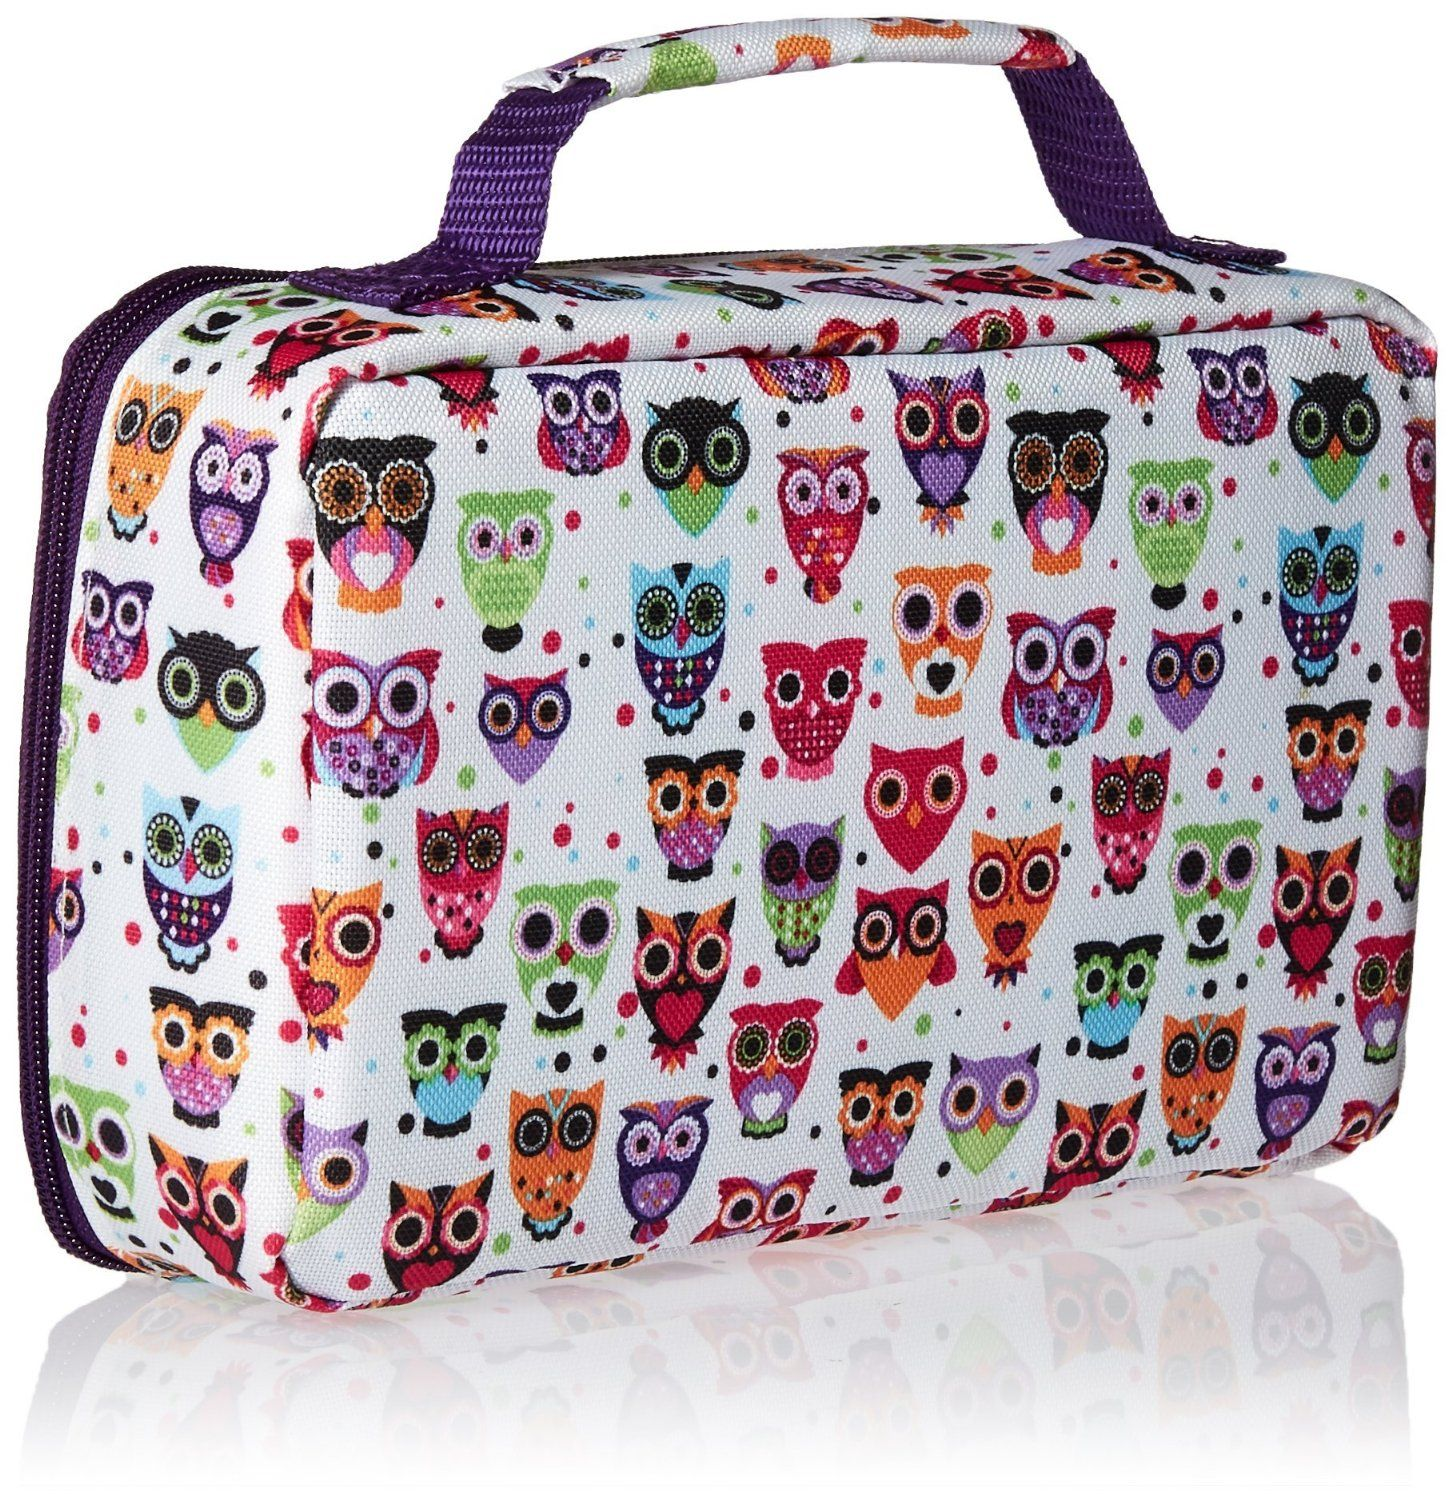 Amazon.com: Fit & Fresh Kids Bento Lunch Kit with Insulated Bag and Ice Packs, Woodstock: Kitchen & Dining